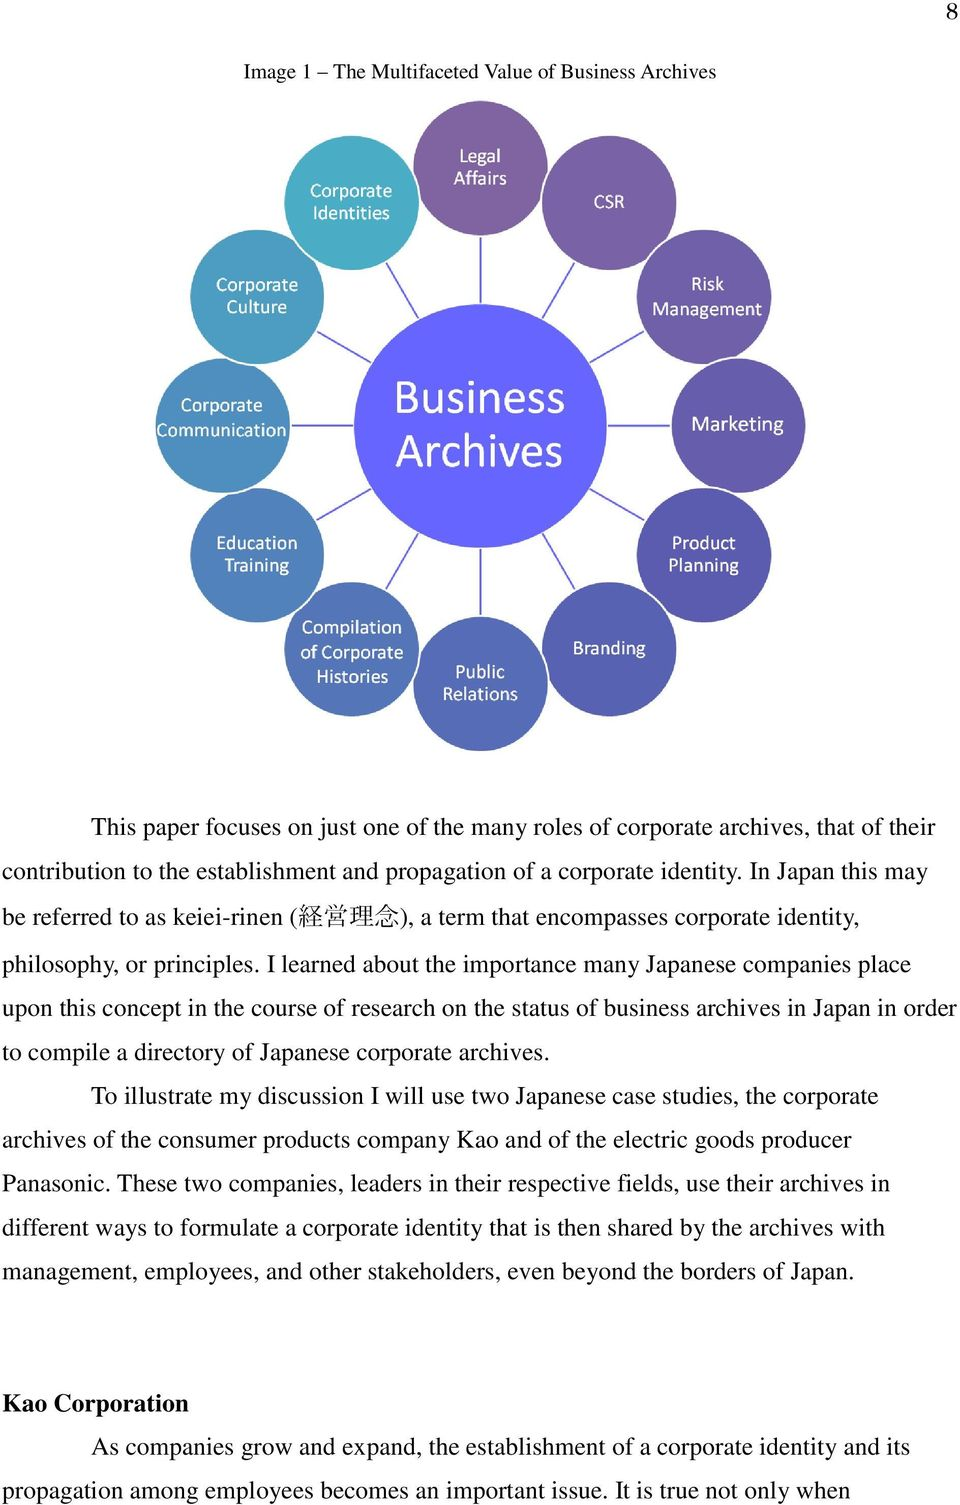 I learned about the importance many Japanese companies place upon this concept in the course of research on the status of business archives in Japan in order to compile a directory of Japanese